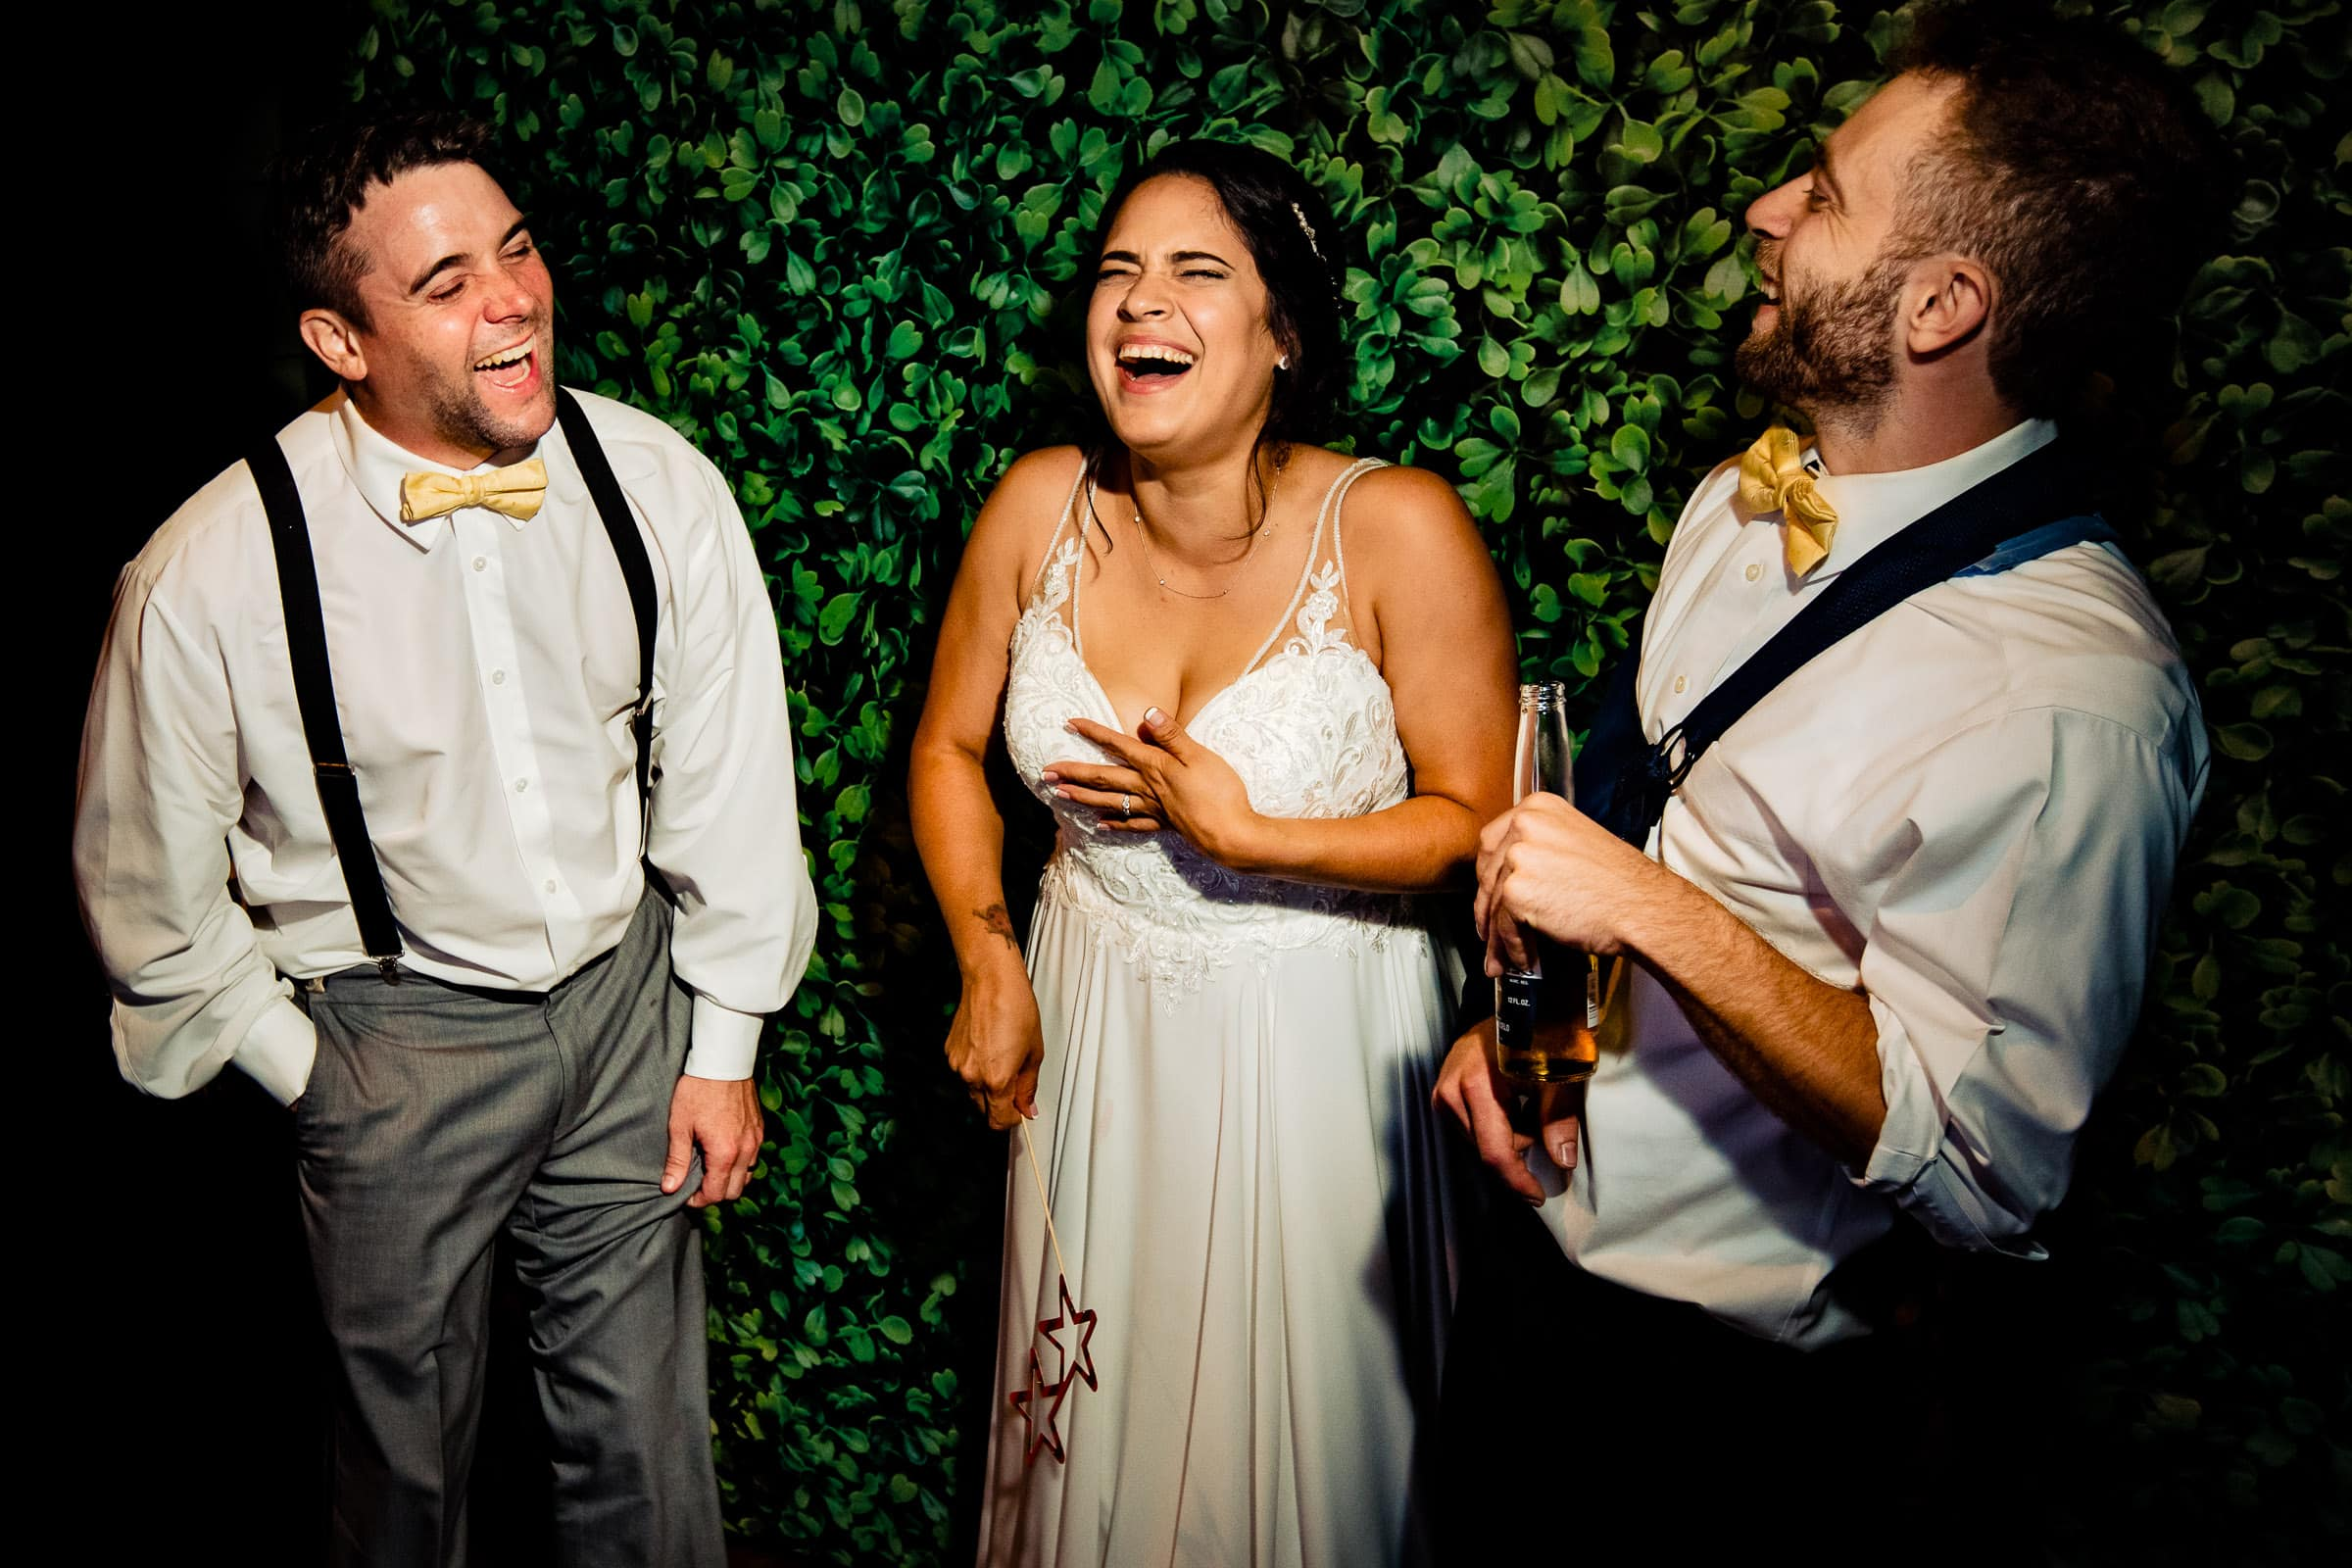 Bride and groom laughing in a photo booth during their Portland Wedding elopement